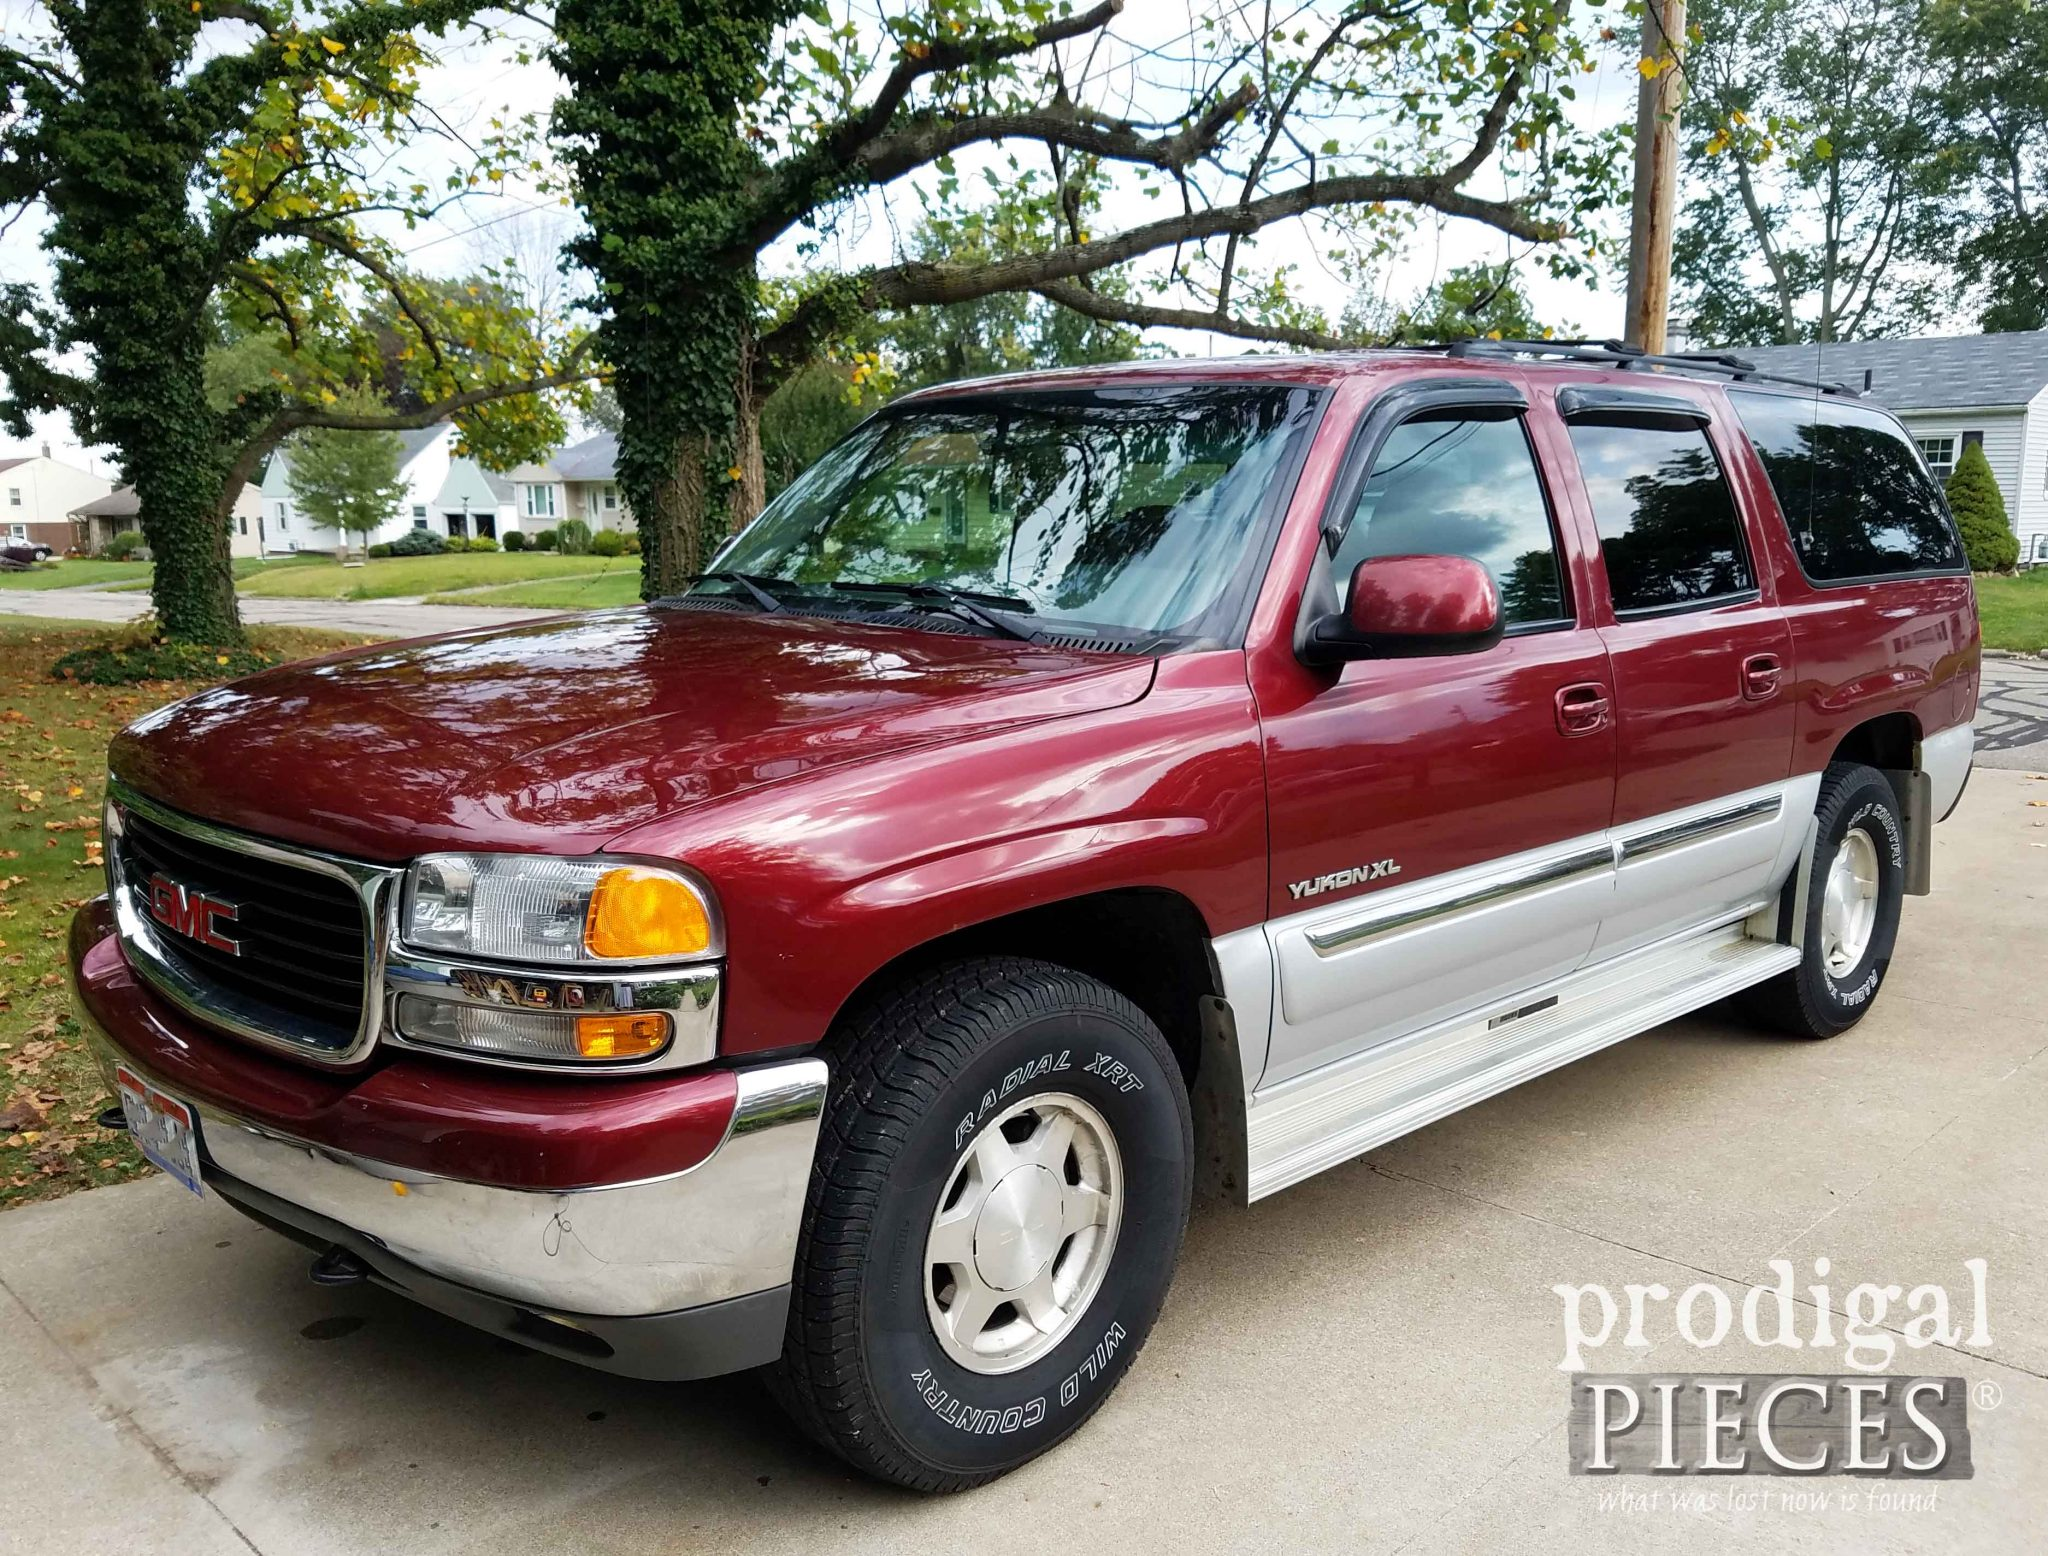 Our Used (new to us) Truck | prodgialpieces.com